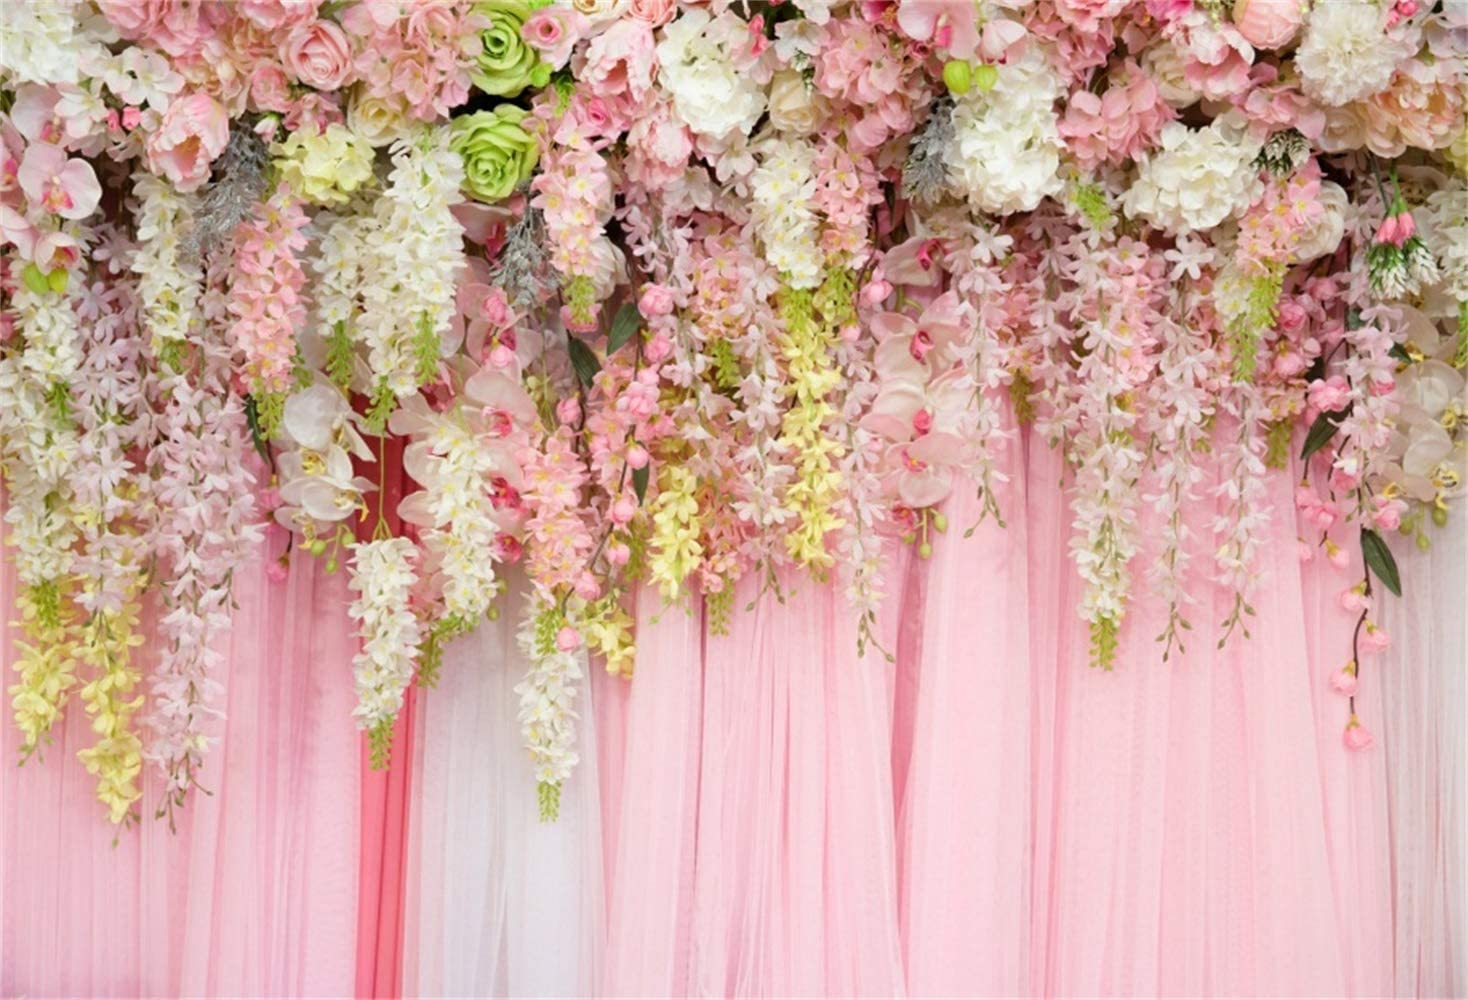 10x10FT Vinyl Backdrop Photographer,Peach,Mellow Organic Delicacy Background for Baby Shower Bridal Wedding Studio Photography Pictures